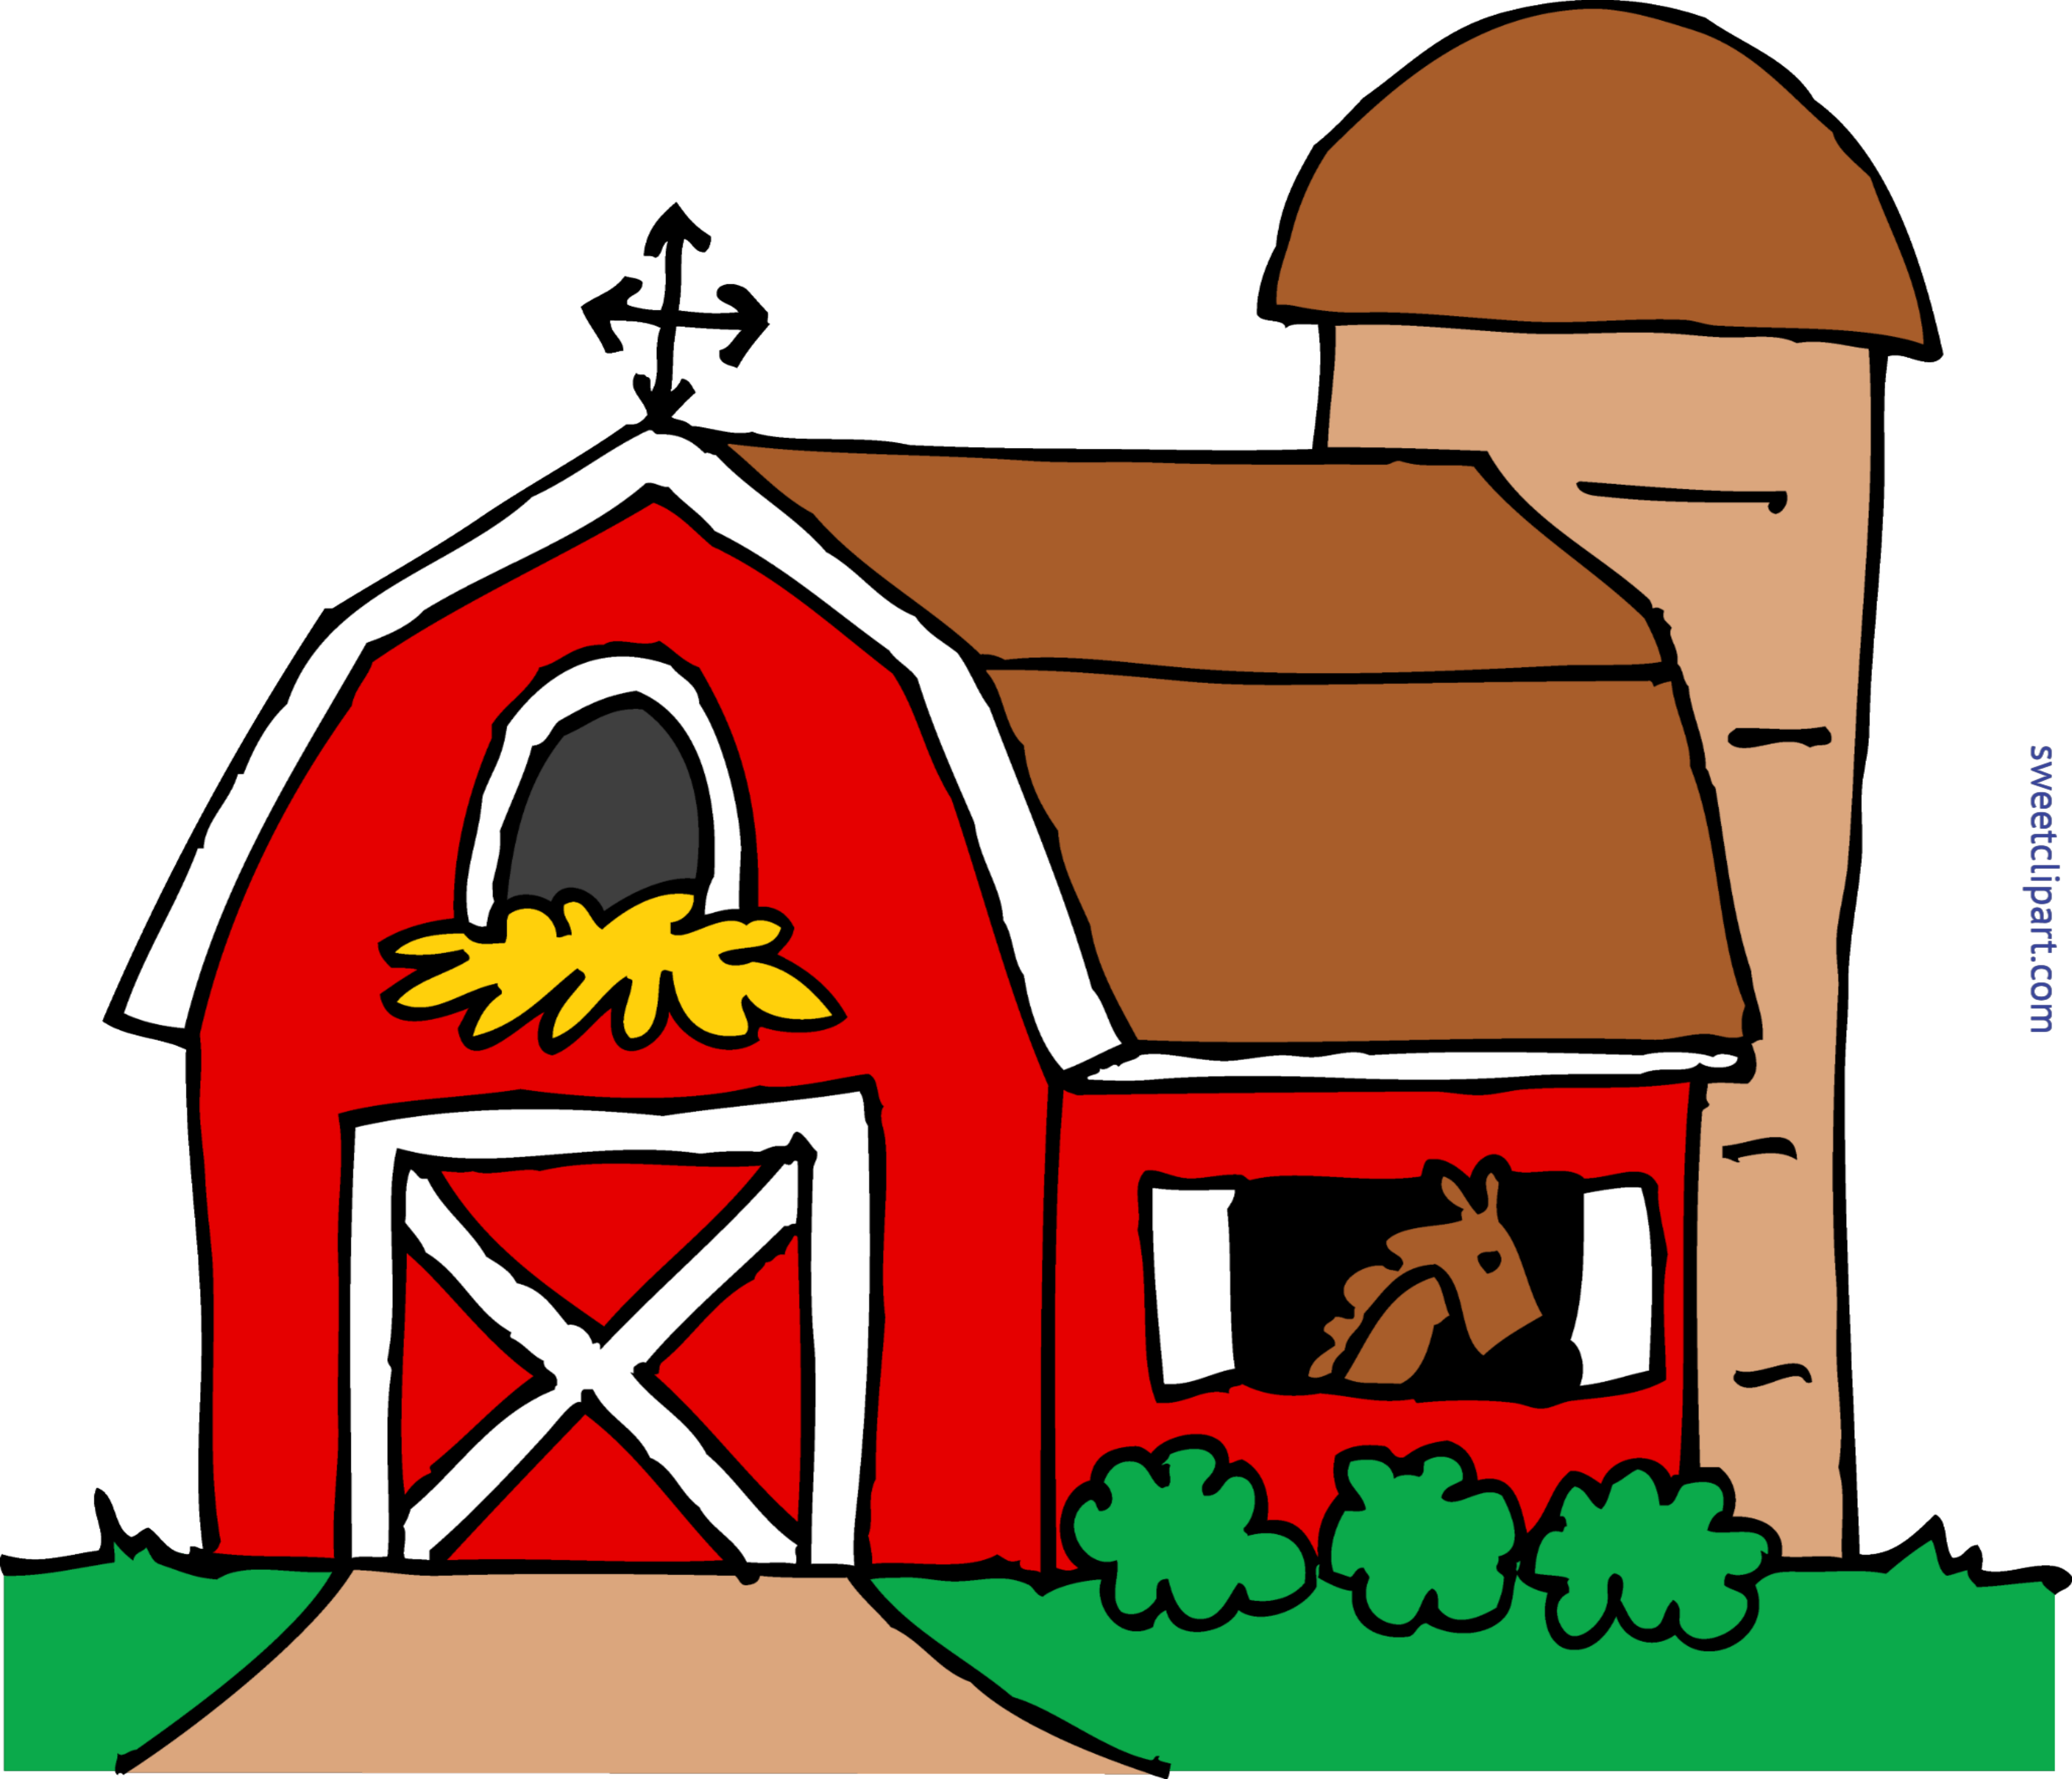 transparent download Cute barn clip art. Wheelbarrow clipart red object